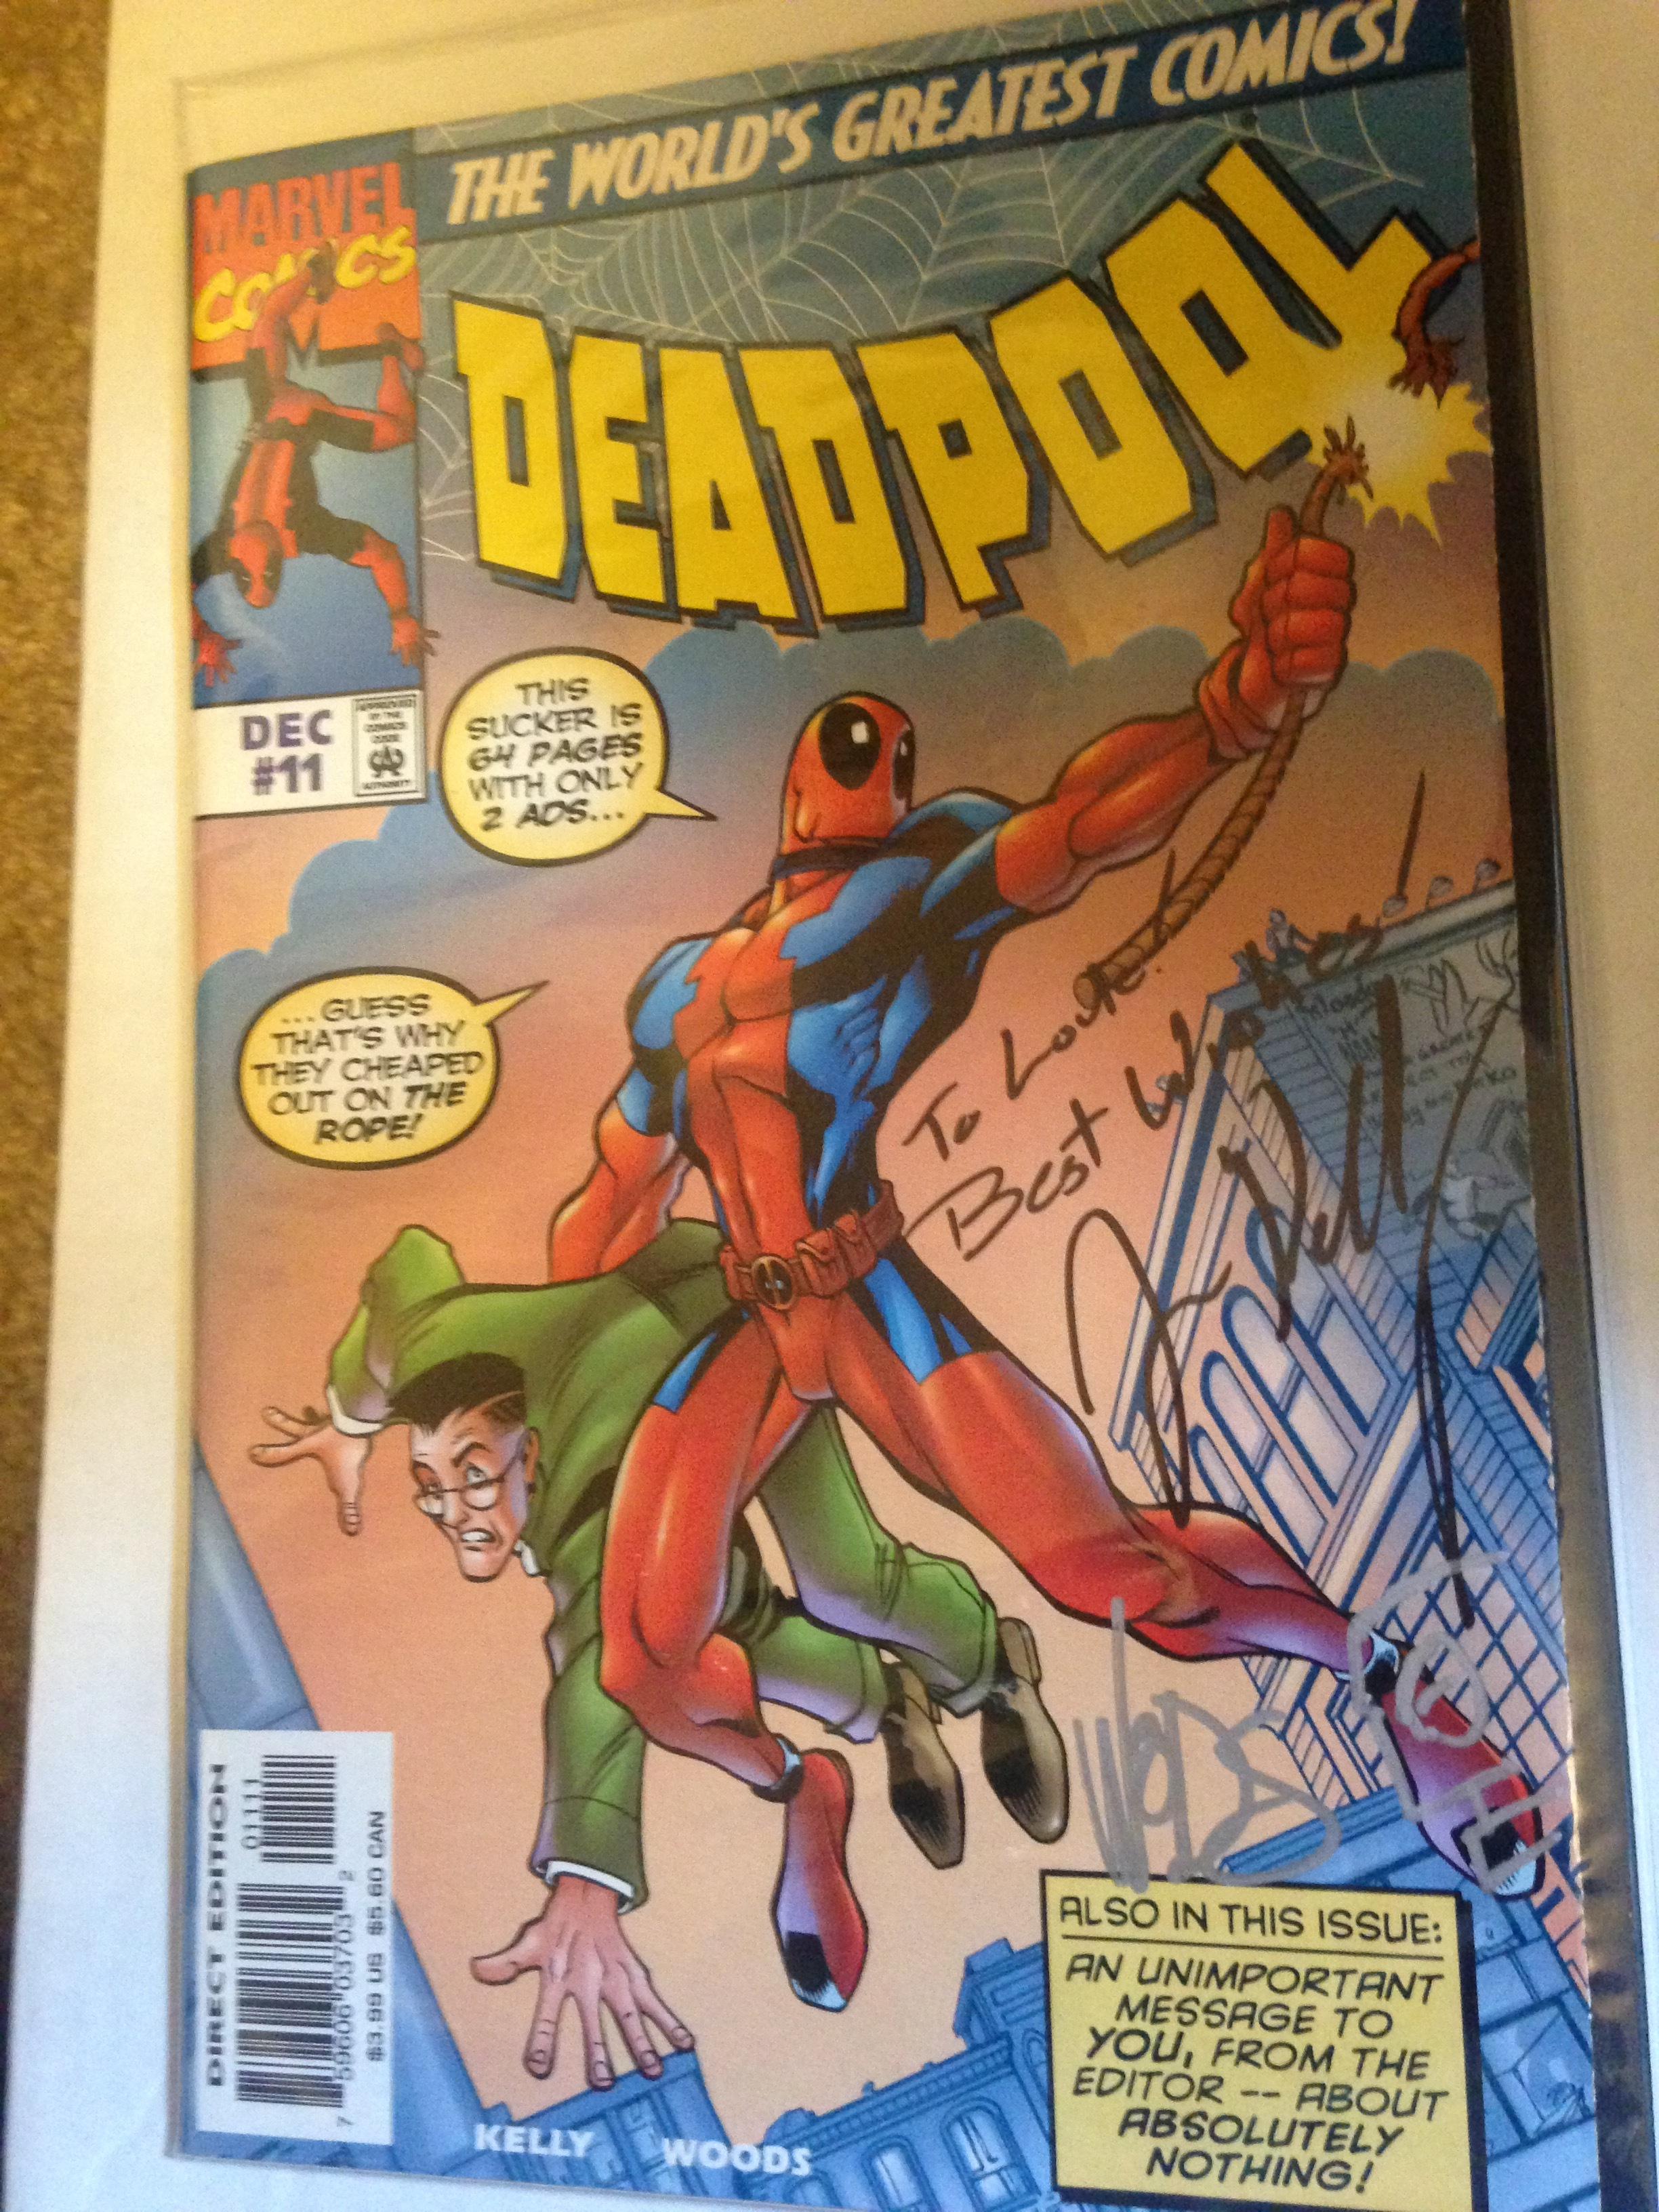 Since then I've found it in single issue and had it signed by Kelly and Woods!